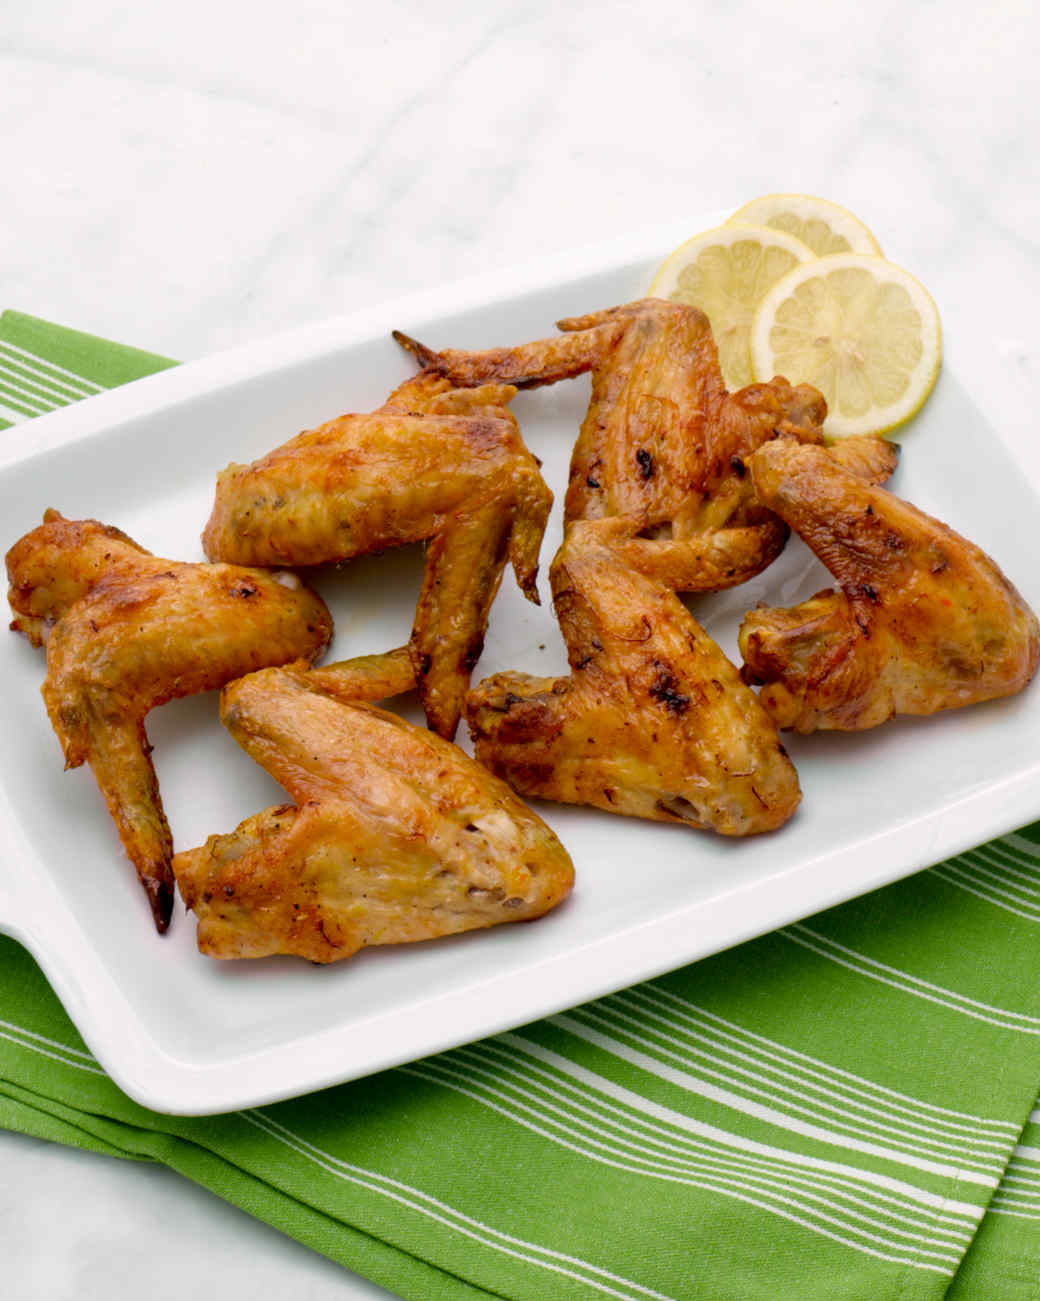 saffron roasted chicken wings recipe martha stewart. Black Bedroom Furniture Sets. Home Design Ideas